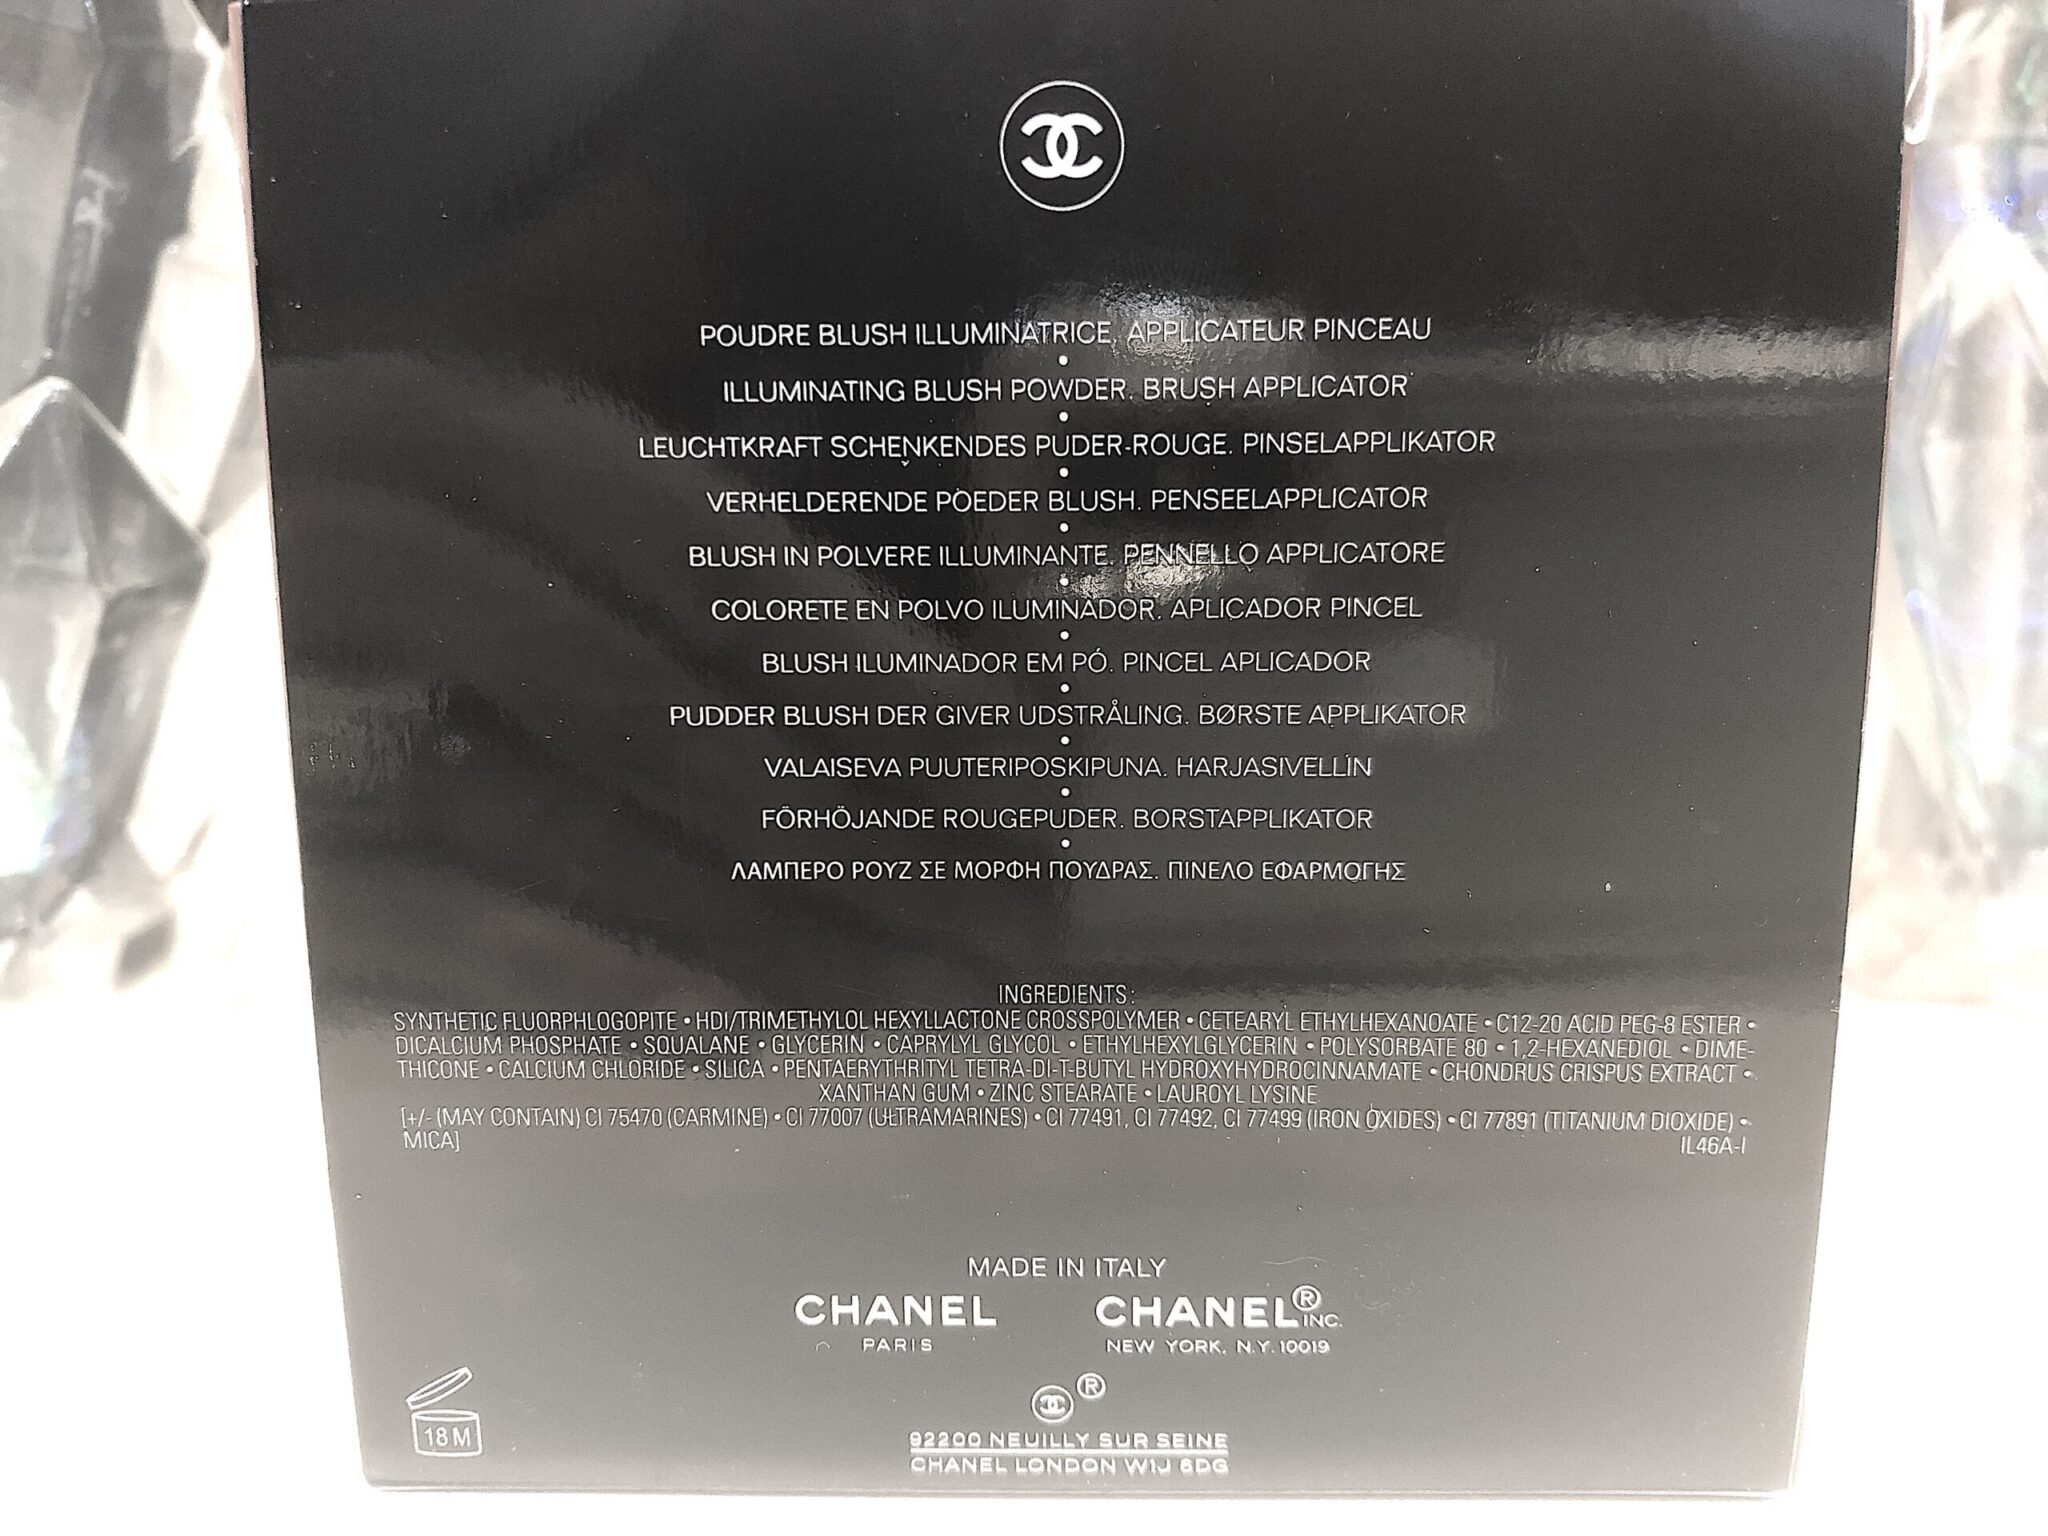 ingredients for les Chaines De Chanel Holiday 2020 Illuminating Blush Powder